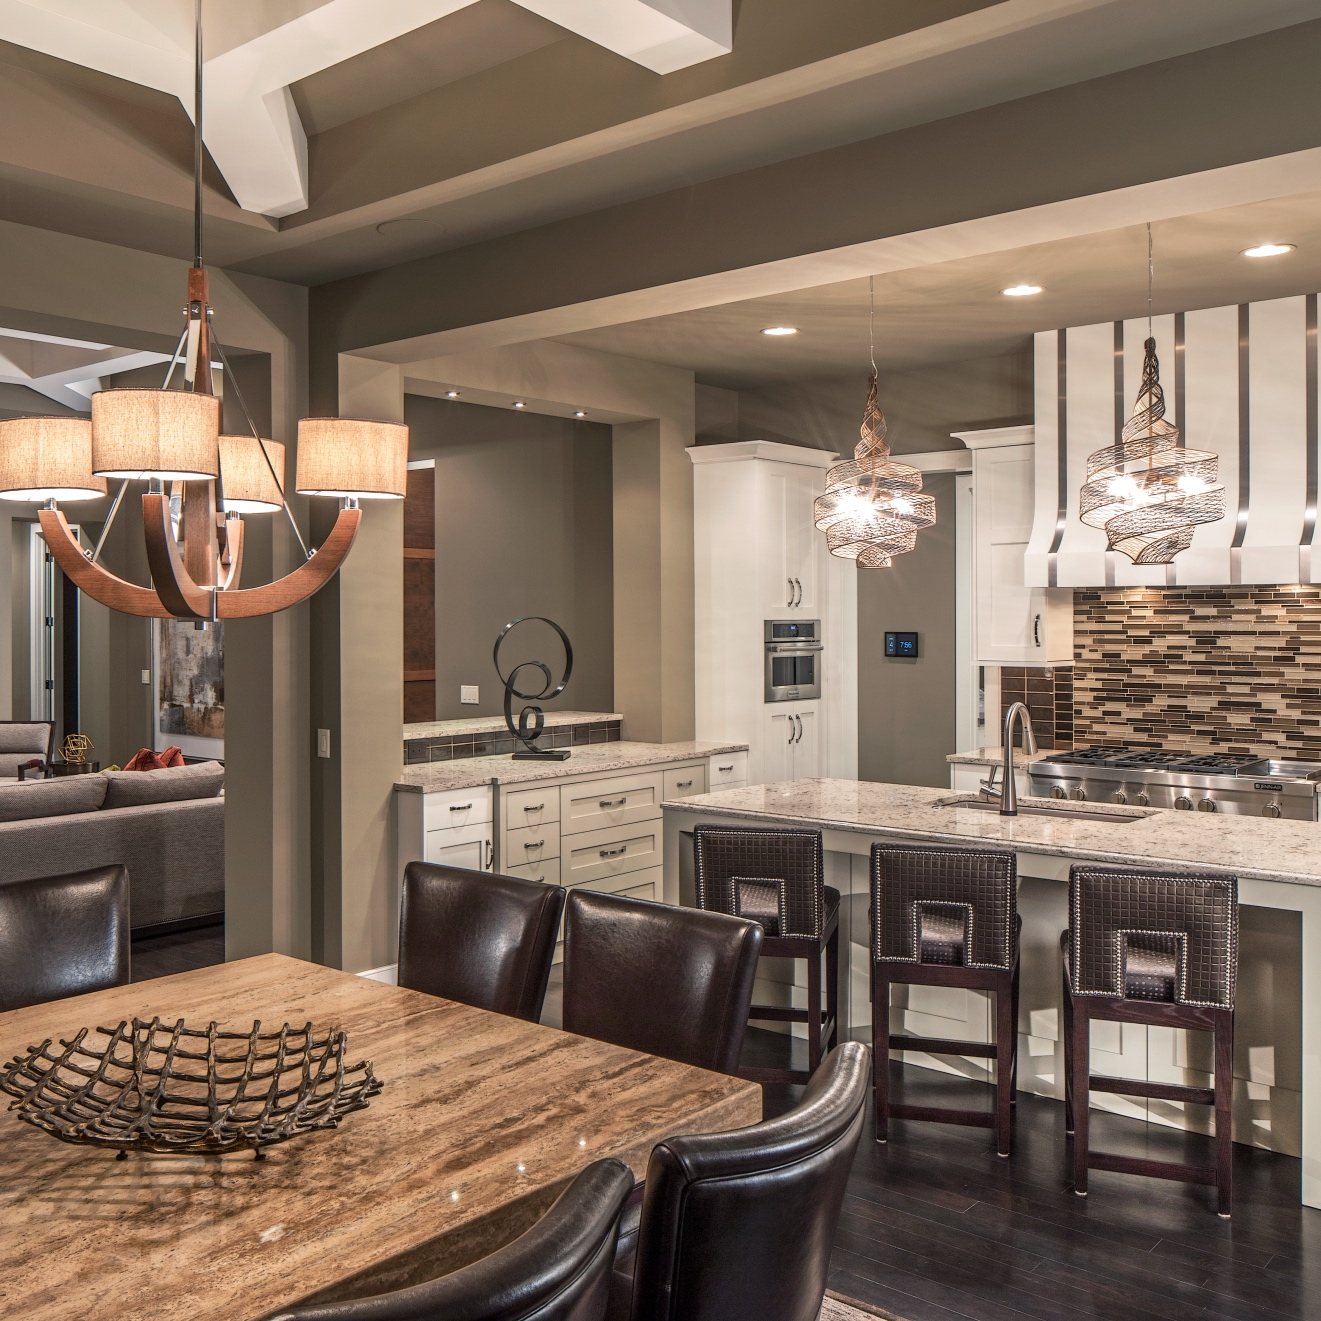 Ken Oster Homes Photo Gallery -